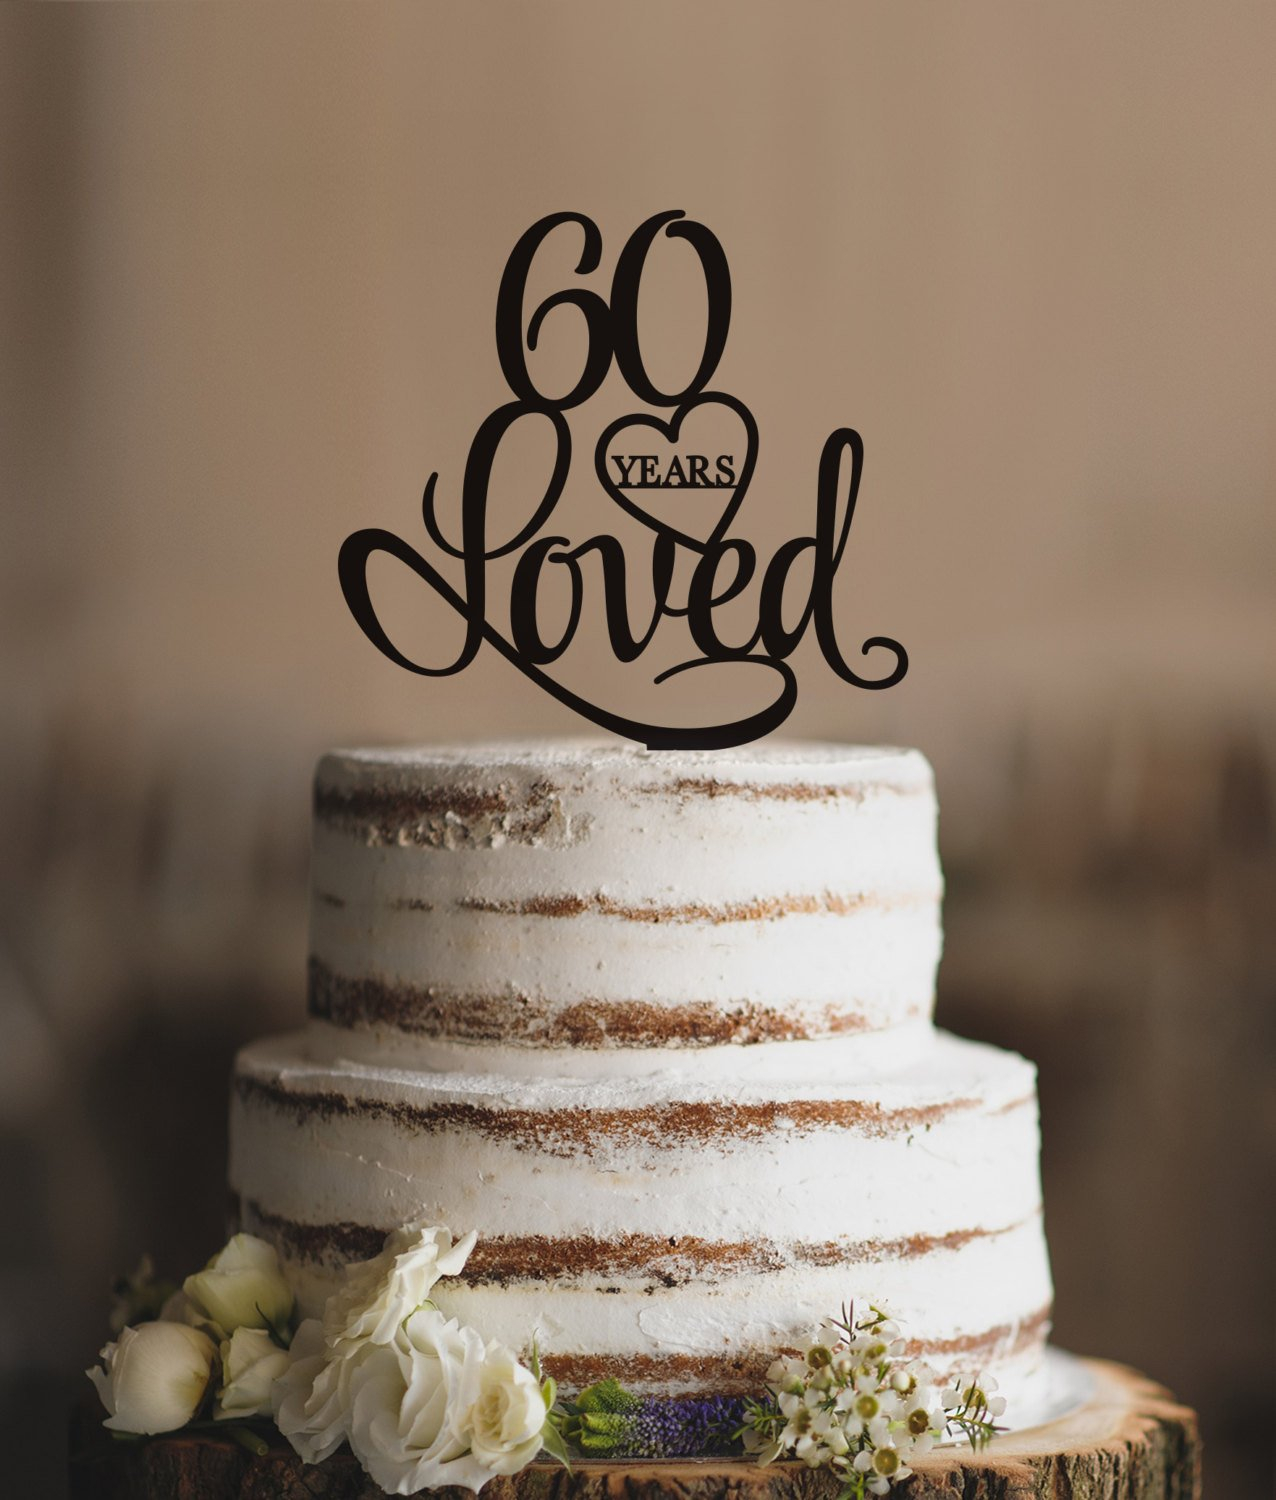 60Th Birthday Cake Toppers 60 Years Loved Cake Topper Classy 60th Birthday Cake Topper Etsy